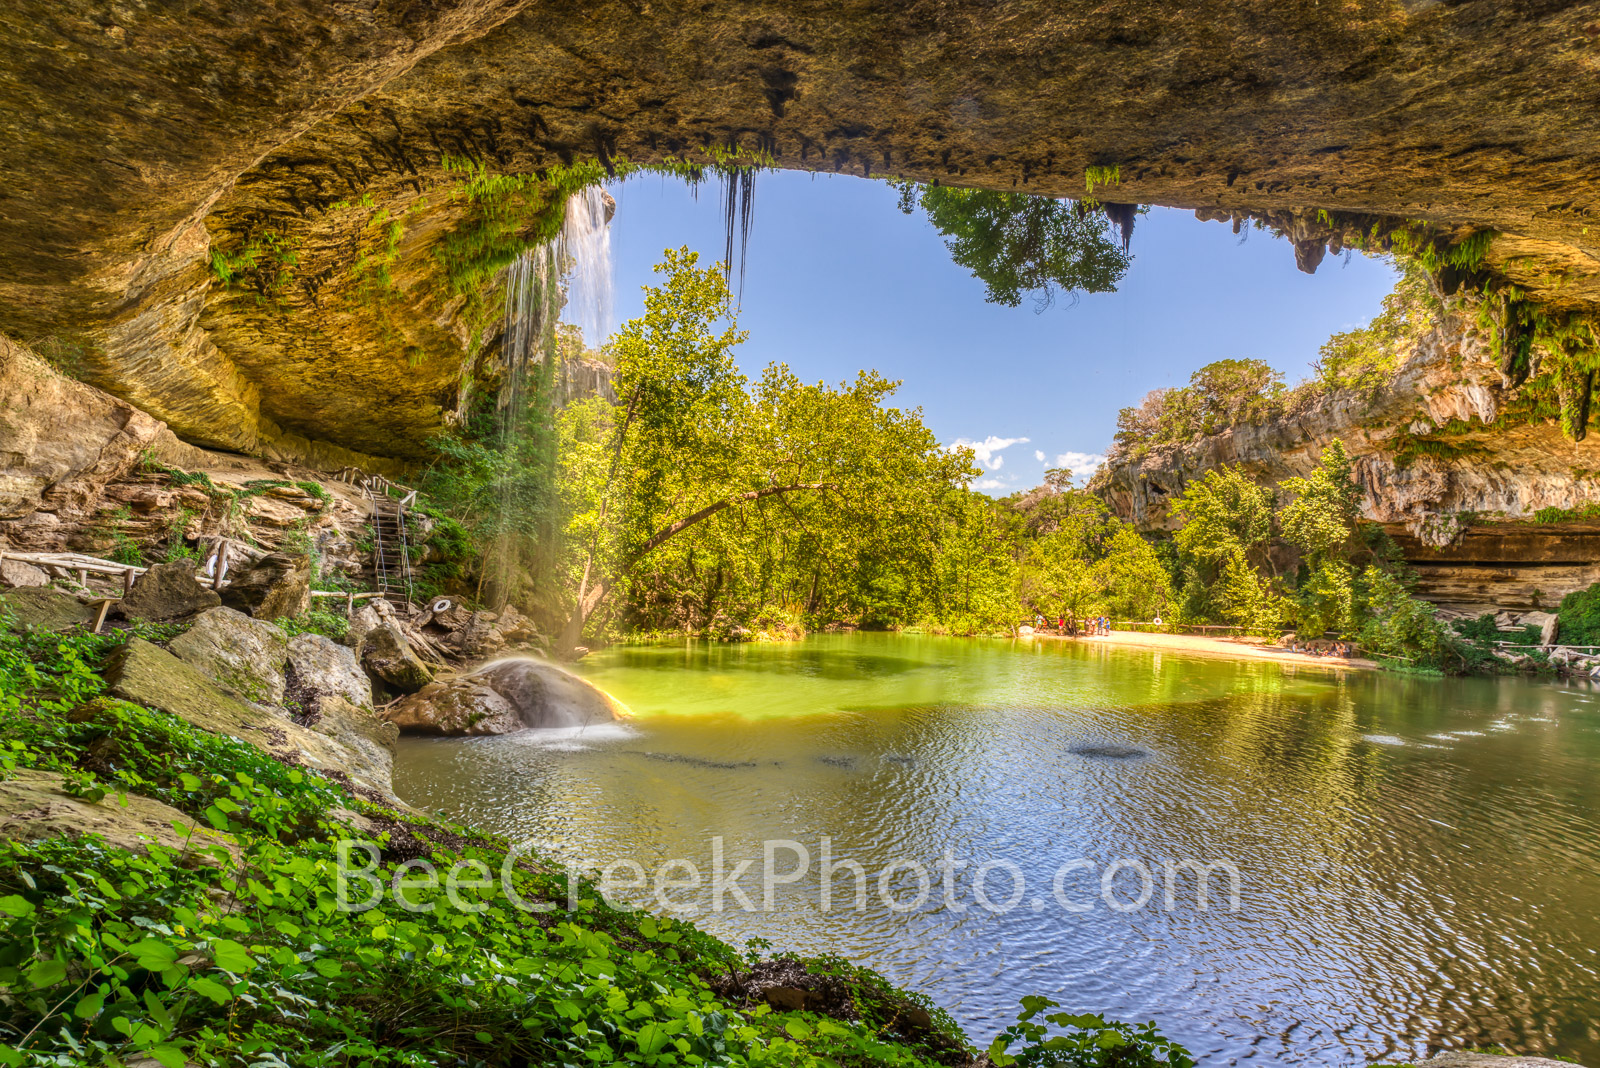 Hamilton Pool Preserve - Hamilton Pool is located off of hwy 71 in Travis county about a thirty minute drive from Austin,Texas...